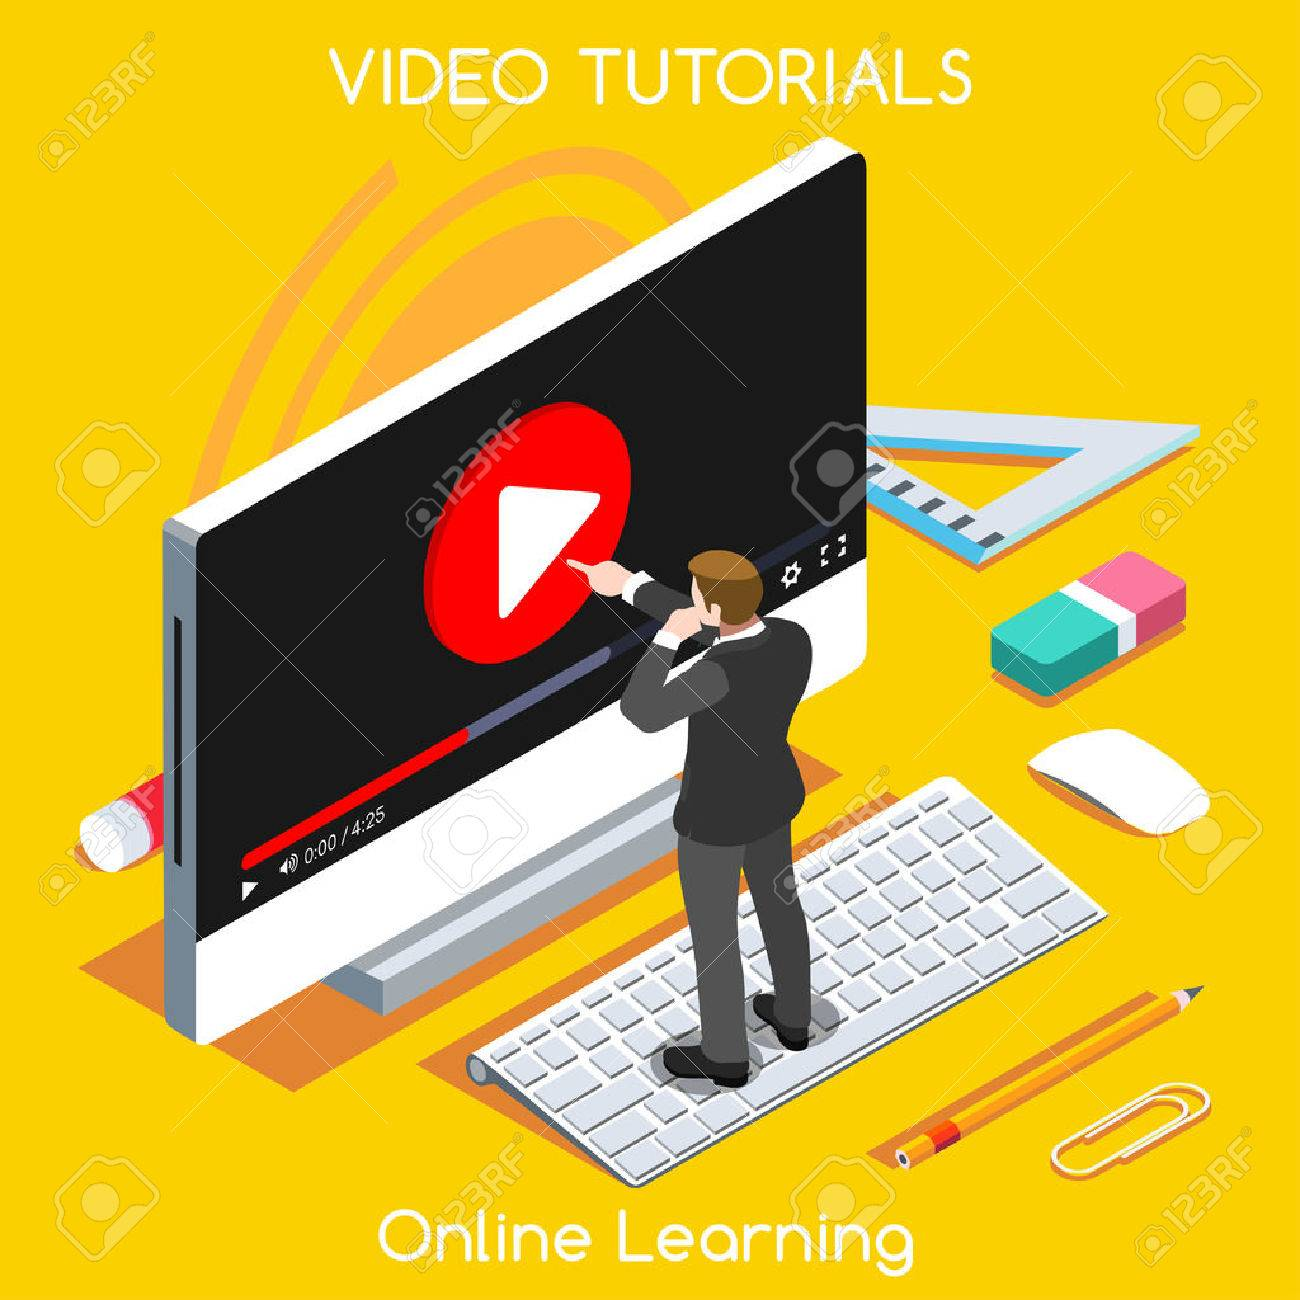 Video tutorials isometric concept. Study and learning banner remote education and knowledge growth. - 52842515